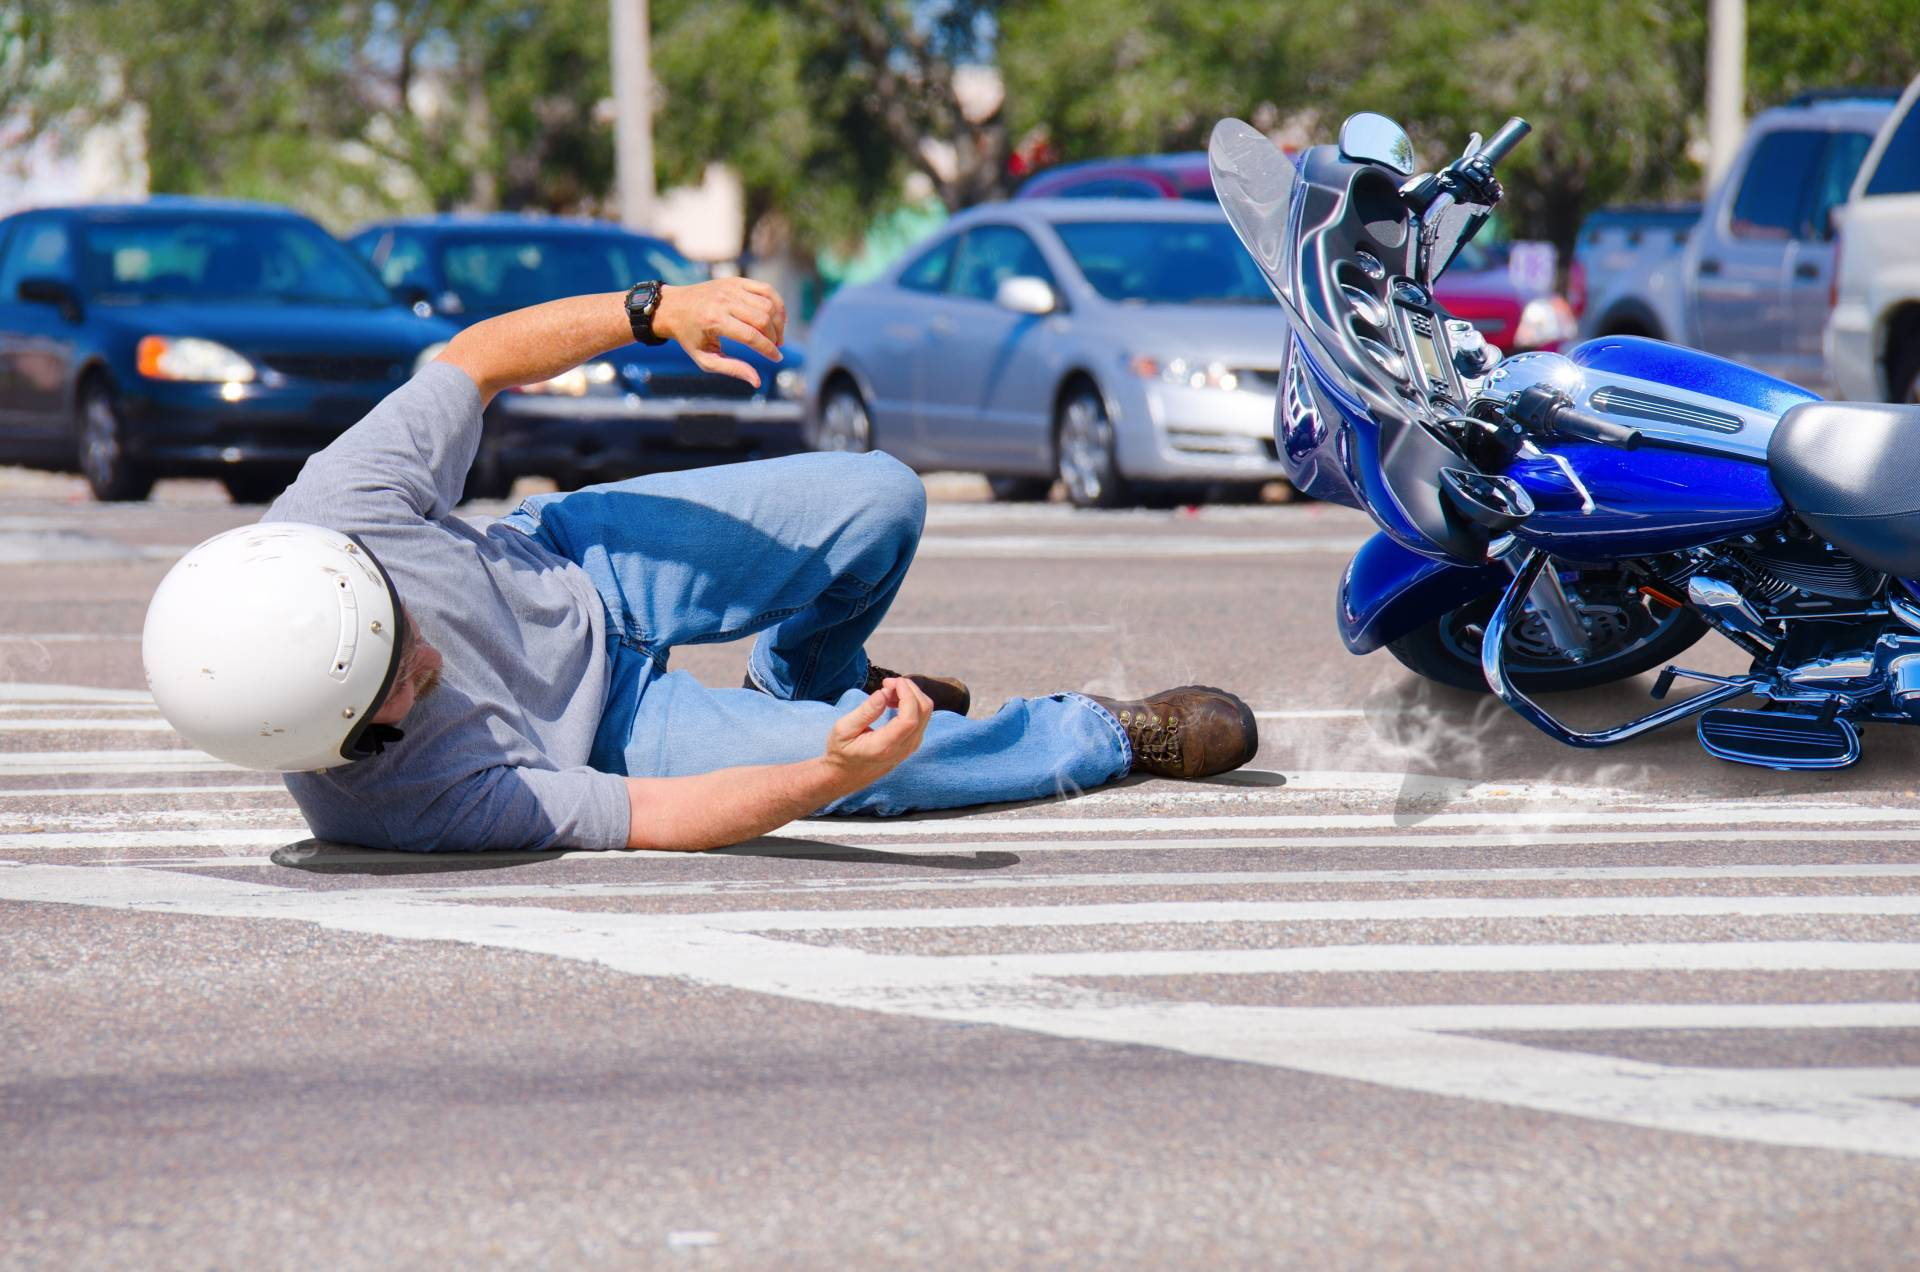 Injured in an Atlanta Motorcycle Accident call the Angell Law firm for a free consultation, today!